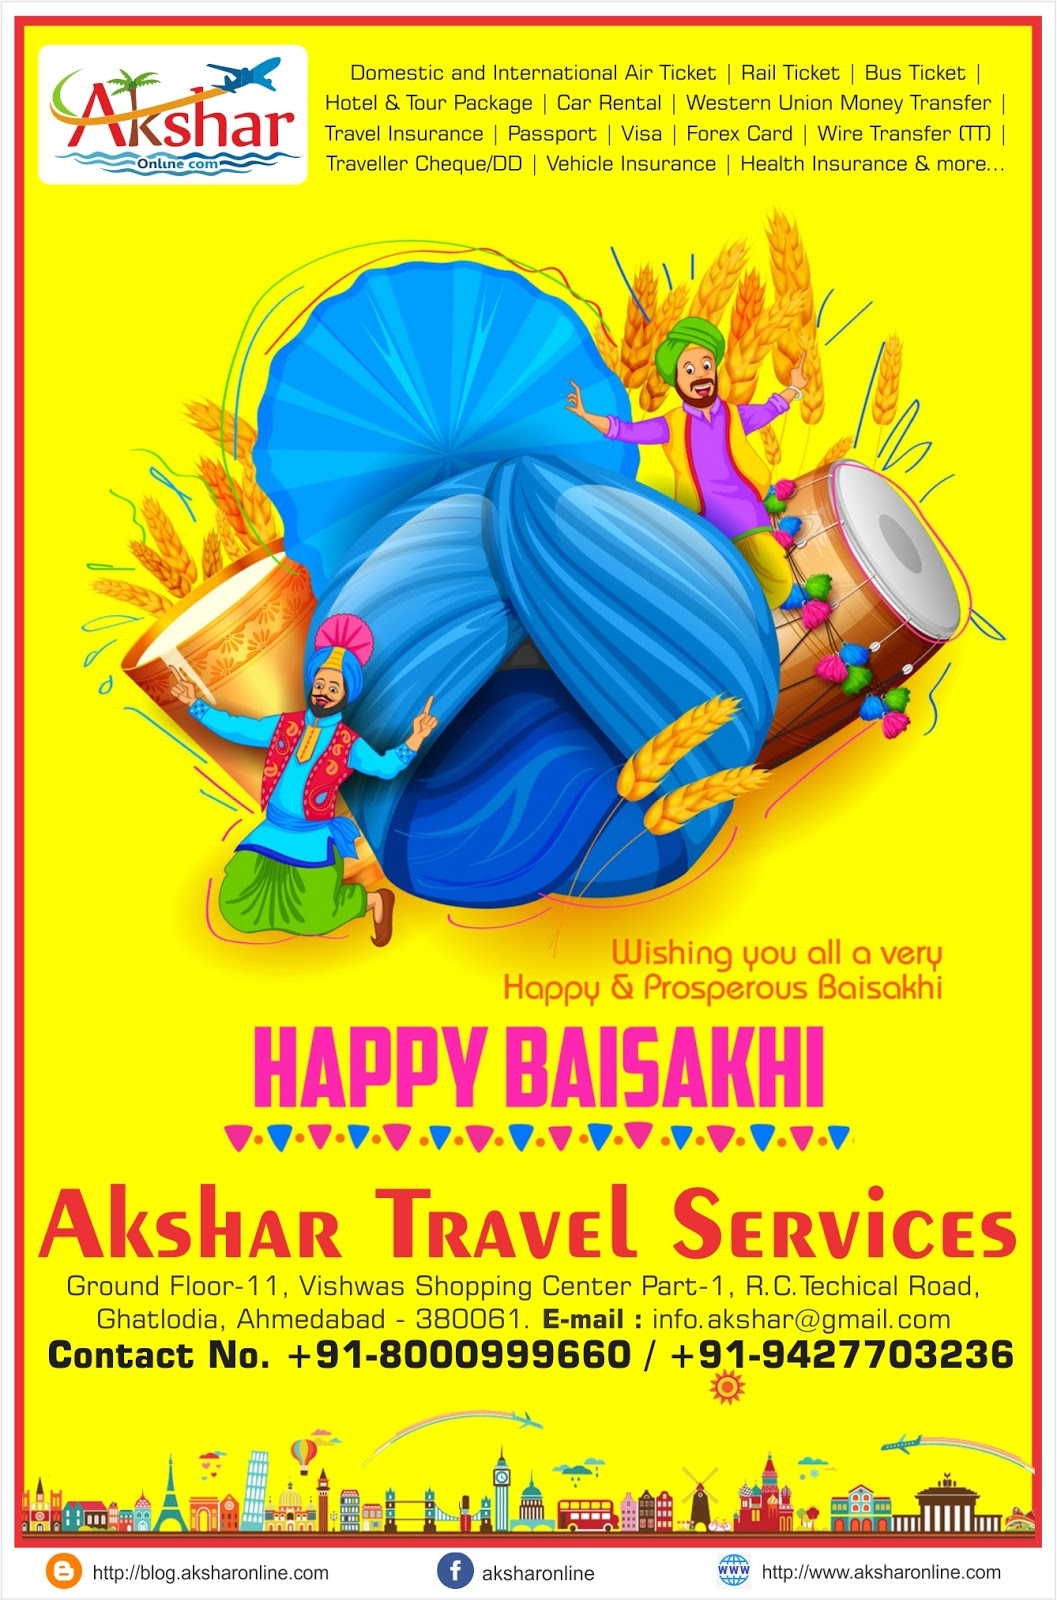 On this Baisakhi, let us pray it will be a year with new peace, new happiness, and an abundance of new friends. May God bless you throughout the coming season. Happy Baisakhi. India travel, travel in India, cheap air tickets, cheap flights, flight, hotels, hotel, holidays, bus tickets, air travel, air tickets, holiday packages, travel packages, railways, trains, rail, aksharonline India, Travel Agent in India, Travel Agent in Gujarat, Travel Agent in Ahmedbad, Cheap Domestic and International Air Ticket Booking, Hotel Booking, Tour Packages, Western Union Money Transfer, Foreign Exchange, Travel Insurance, Car Rental, Utility Bill Payment, Bus Ticketing and More, Cheap Flight Ticket, Cheap Air Ticket, Air Ticket Agent in India, Air Ticket Agent in Ahmedabad, Air Ticket Agent in Gujarat, Air Ticket Agent in Ghatlodia, Flight Ticket Booking,Cheap Railway Ticket, Cheap Railway Ticket, Railway Ticket Agent in India, Railway Ticket Agent in Ahmedabad, Railway Ticket Agent in Gujarat, Railway Ticket Agent in Ghatlodia, Railway Ticket Booking,,Cheap Rail Ticket, Cheap Rail Ticket, Rail Ticket Agent in India, Rail Ticket Agent in Ahmedabad, Rail Ticket Agent in Gujarat, Rail Ticket Agent in Ghatlodia, Rail Ticket Booking,Cheap Bus Ticket, Cheap Bus Ticket, Bus Ticket Agent in India, Bus Ticket Agent in Ahmedabad, Bus Ticket Agent in Gujarat, Bus Ticket Agent in Ghatlodia, Bus Ticket Booking,Cheap Hotel Ticket, Cheap Hotel Ticket, Hotel Ticket Agent in India, Hotel Ticket Agent in Ahmedabad, Hotel Ticket Agent in Gujarat, Hotel Ticket Agent in Ghatlodia, Hotel Ticket Booking,Cheap Travel Insurance Ticket, Cheap Travel Insurance Ticket, Travel Insurance Ticket Agent in India, Travel Insurance Ticket Agent in Ahmedabad, Travel Insurance Ticket Agent in Gujarat, Travel Insurance Ticket Agent in Ghatlodia, Travel Insurance Ticket Booking,Cheap Car Rental Ticket, Cheap Car Rental Ticket, Car Rental Ticket Agent in India, Car Rental Ticket Agent in Ahmedabad, Car Rental Ticket Agent in Gujarat, Car Rental Ticket Agent in Ghatlodia, Car Rental Ticket Booking,Daily Service bus ticket booking, volvo bus ticket agent, volvo ticket agent in ahmedabad, volvo ticket, air ticket international, international air ticket agent, international flight ticket agent in ahmedabad, domestic air ticket booking, domestic and international air ticket booking agency, air ticket booking center, airline ticket booking center, 24hrs ticketing, air ticket india, air ticket international, sola ticket booking, ghatlodia ticket booking, ahmedabad ticket booking agent, railway ticket agent in ahmedabad, hotel booking in ahmedabad, flight ticket agent in ahmedabad, Flight booking, domestic flights, international flights,cheap air tickets, flight booking, air ticket booking, hotel booking, packages, buses, 5 star hotels, discount on hotels, Tour agent in ghatlodia, travel agent in ghatlodia, ghatlodia air travel agency, airline travel booking, flight booking, flight reservation, tour operator in ghatlodia, travel agent in ghatlodia, cheap flights, cheap tickets, expedia flights, seats availability, reservation, enquiry, pnr enquiry, cheap air tickets, flight booking, air ticket booking, hotel booking, indianrail, irctc, reservation irctc, luxury train in india, asia travel and hotels, indian travel agency, resorts, hotelairline tickets, holiday, travel ,hotels, hotel, flight booking, cheap flight tickets, package tours, discount air ticket, air ticket offers, air ticket offer, airticket, china airlines,air ticket,travel agency,cheap airline tickets,,cheap air tickets,cheap air,cheap airfare,cheap o air,cheap plane tickets,airplane ticket,travel sites,airline flights, travel websites,travel deals,places to visit,beach holidays,travel packages,best flight deals,travel agencies,best at travel,places to go,disney vacation planner,tour agency,travel consultant,local travel agents,rail europe travel agents,rail travel agent,international travel agency,corporate travel agent,honeymoon travel agent, become airline ticket agent, airline ticket agent calgary, airline ticket agent in ahmedabad, airline ticket agent in ghatlodia, travel agency near me, travel agency in ahmedabad, travel agency in bapunagar, travel agency in dariyapur, travel agency in shahpur, travel agency in khanpur, travel agency in mirzapur, travel agency in shahibaug, travel agency in kali, travel agency in chandola lake, travel agency in bodakdev, travel agency in maninagar, travel agency in vastrapur, travel agency in nava vadaj, travel agency in Ambawadi, travel agency in Ellis Bridge, travel agency in navrangpura, travel agency in ghatlodiya, travel agency in naroda, travel agency in jodhpur, travel agency in paldi, travel agency in bopal, travel agency in ranip, travel agency in gota, travel agency in sarkhej, travel agency in vasana, travel agency in vejalpur, travel agency in gomtipur, travel agency in C G Road, travel agency in lawgarden, travel agency in laldarwaja, travel agency in prahladnagar, travel agency in satellite, travel agency in jivrajpark, travel agency in narol, travel agency in vatwa, travel agency in  ghodasar, travel agency in gurukul, travel agency in  isanpur, travel agency in chandkheda, travel agency in vastral, travel agency in juhapura, travel agency in thaltej, travel agency in chandlodiya, travel agency in krishnanagar, travel agency in shilaj, travel agency in vastral, travel agency in meghani nagar, travel agency in ashtodia, travel agency in gandhinagar, travel agency in kalol, travel agency in bhavnagar, travel agency in mehsana, travel agency in palanpur, travel agency in banaskantha, Rail Ticket Booking Agent near me, Rail Ticket Booking Agent in ahmedabad, Rail Ticket Booking Agent in bapunagar, Rail Ticket Booking Agent in dariyapur, Rail Ticket Booking Agent in shahpur, Rail Ticket Booking Agent in khanpur, Rail Ticket Booking Agent in mirzapur, Rail Ticket Booking Agent in shahibaug, Rail Ticket Booking Agent in kali, Rail Ticket Booking Agent in chandola lake, Rail Ticket Booking Agent in bodakdev, Rail Ticket Booking Agent in maninagar, Rail Ticket Booking Agent in vastrapur, Rail Ticket Booking Agent in nava vadaj, Rail Ticket Booking Agent in Ambawadi, Rail Ticket Booking Agent in Ellis Bridge, Rail Ticket Booking Agent in navrangpura, Rail Ticket Booking Agent in ghatlodiya, Rail Ticket Booking Agent in naroda, Rail Ticket Booking Agent in jodhpur, Rail Ticket Booking Agent in paldi, Rail Ticket Booking Agent in bopal, Rail Ticket Booking Agent in ranip, Rail Ticket Booking Agent in gota, Rail Ticket Booking Agent in sarkhej, Rail Ticket Booking Agent in vasana, Rail Ticket Booking Agent in vejalpur, Rail Ticket Booking Agent in gomtipur, Rail Ticket Booking Agent in C G Road, Rail Ticket Booking Agent in lawgarden, Rail Ticket Booking Agent in laldarwaja, Rail Ticket Booking Agent in prahladnagar, Rail Ticket Booking Agent in satellite, Rail Ticket Booking Agent in jivrajpark, Rail Ticket Booking Agent in narol, Rail Ticket Booking Agent in vatwa, Rail Ticket Booking Agent in  ghodasar, Rail Ticket Booking Agent in gurukul, Rail Ticket Booking Agent in  isanpur, Rail Ticket Booking Agent in chandkheda, Rail Ticket Booking Agent in vastral, Rail Ticket Booking Agent in juhapura, Rail Ticket Booking Agent in thaltej, Rail Ticket Booking Agent in chandlodiya, Rail Ticket Booking Agent in krishnanagar, Rail Ticket Booking Agent in shilaj, Rail Ticket Booking Agent in vastral, Rail Ticket Booking Agent in meghani nagar, Rail Ticket Booking Agent in ashtodia, Rail Ticket Booking Agent in gandhinagar, Rail Ticket Booking Agent in kalol, Rail Ticket Booking Agent in bhavnagar, Rail Ticket Booking Agent in mehsana, Rail Ticket Booking Agent in palanpur, Rail Ticket Booking Agent in banaskantha, Air Ticket Booking Agent near me, Air Ticket Booking Agent in ahmedabad, Air Ticket Booking Agent in bapunagar, Air Ticket Booking Agent in dariyapur, Air Ticket Booking Agent in shahpur, Air Ticket Booking Agent in khanpur, Air Ticket Booking Agent in mirzapur, Air Ticket Booking Agent in shahibaug, Air Ticket Booking Agent in kali, Air Ticket Booking Agent in chandola lake, Air Ticket Booking Agent in bodakdev, Air Ticket Booking Agent in maninagar, Air Ticket Booking Agent in vastrapur, Air Ticket Booking Agent in nava vadaj, Air Ticket Booking Agent in Ambawadi, Air Ticket Booking Agent in Ellis Bridge, Air Ticket Booking Agent in navrangpura, Air Ticket Booking Agent in ghatlodiya, Air Ticket Booking Agent in naroda, Air Ticket Booking Agent in jodhpur, Air Ticket Booking Agent in paldi, Air Ticket Booking Agent in bopal, Air Ticket Booking Agent in ranip, Air Ticket Booking Agent in gota, Air Ticket Booking Agent in sarkhej, Air Ticket Booking Agent in vasana, Air Ticket Booking Agent in vejalpur, Air Ticket Booking Agent in gomtipur, Air Ticket Booking Agent in C G Road, Air Ticket Booking Agent in lawgarden, Air Ticket Booking Agent in laldarwaja, Air Ticket Booking Agent in prahladnagar, Air Ticket Booking Agent in satellite, Air Ticket Booking Agent in jivrajpark, Air Ticket Booking Agent in narol, Air Ticket Booking Agent in vatwa, Air Ticket Booking Agent in  ghodasar, Air Ticket Booking Agent in gurukul, Air Ticket Booking Agent in  isanpur, Air Ticket Booking Agent in chandkheda, Air Ticket Booking Agent in vastral, Air Ticket Booking Agent in juhapura, Air Ticket Booking Agent in thaltej, Air Ticket Booking Agent in chandlodiya, Air Ticket Booking Agent in krishnanagar, Air Ticket Booking Agent in shilaj, Air Ticket Booking Agent in vastral, Air Ticket Booking Agent in meghani nagar, Air Ticket Booking Agent in ashtodia, Air Ticket Booking Agent in gandhinagar, Air Ticket Booking Agent in kalol, Air Ticket Booking Agent in bhavnagar, Air Ticket Booking Agent in mehsana, Air Ticket Booking Agent in palanpur, Air Ticket Booking Agent in banaskantha, Bus Ticket Booking near me, Bus Ticket Booking in ahmedabad, Bus Ticket Booking in bapunagar, Bus Ticket Booking in dariyapur, Bus Ticket Booking in shahpur, Bus Ticket Booking in khanpur, Bus Ticket Booking in mirzapur, Bus Ticket Booking in shahibaug, Bus Ticket Booking in kali, Bus Ticket Booking in chandola lake, Bus Ticket Booking in bodakdev, Bus Ticket Booking in maninagar, Bus Ticket Booking in vastrapur, Bus Ticket Booking in nava vadaj, Bus Ticket Booking in Ambawadi, Bus Ticket Booking in Ellis Bridge, Bus Ticket Booking in navrangpura, Bus Ticket Booking in ghatlodiya, Bus Ticket Booking in naroda, Bus Ticket Booking in jodhpur, Bus Ticket Booking in paldi, Bus Ticket Booking in bopal, Bus Ticket Booking in ranip, Bus Ticket Booking in gota, Bus Ticket Booking in sarkhej, Bus Ticket Booking in vasana, Bus Ticket Booking in vejalpur, Bus Ticket Booking in gomtipur, Bus Ticket Booking in C G Road, Bus Ticket Booking in lawgarden, Bus Ticket Booking in laldarwaja, Bus Ticket Booking in prahladnagar, Bus Ticket Booking in satellite, Bus Ticket Booking in jivrajpark, Bus Ticket Booking in narol, Bus Ticket Booking in vatwa, Bus Ticket Booking in  ghodasar, Bus Ticket Booking in gurukul, Bus Ticket Booking in  isanpur, Bus Ticket Booking in chandkheda, Bus Ticket Booking in vastral, Bus Ticket Booking in juhapura, Bus Ticket Booking in thaltej, Bus Ticket Booking in chandlodiya, Bus Ticket Booking in krishnanagar, Bus Ticket Booking in shilaj, Bus Ticket Booking in vastral, Bus Ticket Booking in meghani nagar, Bus Ticket Booking in ashtodia, Bus Ticket Booking in gandhinagar, Bus Ticket Booking in kalol, Bus Ticket Booking in bhavnagar, Bus Ticket Booking in mehsana, Bus Ticket Booking in palanpur, Bus Ticket Booking in banaskantha, Hotel Tour Package Booking Agent near me, Hotel Tour Package Booking Agent in ahmedabad, Hotel Tour Package Booking Agent in bapunagar, Hotel Tour Package Booking Agent in dariyapur, Hotel Tour Package Booking Agent in shahpur, Hotel Tour Package Booking Agent in khanpur, Hotel Tour Package Booking Agent in mirzapur, Hotel Tour Package Booking Agent in shahibaug, Hotel Tour Package Booking Agent in kali, Hotel Tour Package Booking Agent in chandola lake, Hotel Tour Package Booking Agent in bodakdev, Hotel Tour Package Booking Agent in maninagar, Hotel Tour Package Booking Agent in vastrapur, Hotel Tour Package Booking Agent in nava vadaj, Hotel Tour Package Booking Agent in Ambawadi, Hotel Tour Package Booking Agent in Ellis Bridge, Hotel Tour Package Booking Agent in navrangpura, Hotel Tour Package Booking Agent in ghatlodiya, Hotel Tour Package Booking Agent in naroda, Hotel Tour Package Booking Agent in jodhpur, Hotel Tour Package Booking Agent in paldi, Hotel Tour Package Booking Agent in bopal, Hotel Tour Package Booking Agent in ranip, Hotel Tour Package Booking Agent in gota, Hotel Tour Package Booking Agent in sarkhej, Hotel Tour Package Booking Agent in vasana, Hotel Tour Package Booking Agent in vejalpur, Hotel Tour Package Booking Agent in gomtipur, Hotel Tour Package Booking Agent in C G Road, Hotel Tour Package Booking Agent in lawgarden, Hotel Tour Package Booking Agent in laldarwaja, Hotel Tour Package Booking Agent in prahladnagar, Hotel Tour Package Booking Agent in satellite, Hotel Tour Package Booking Agent in jivrajpark, Hotel Tour Package Booking Agent in narol, Hotel Tour Package Booking Agent in vatwa, Hotel Tour Package Booking Agent in  ghodasar, Hotel Tour Package Booking Agent in gurukul, Hotel Tour Package Booking Agent in  isanpur, Hotel Tour Package Booking Agent in chandkheda, Hotel Tour Package Booking Agent in vastral, Hotel Tour Package Booking Agent in juhapura, Hotel Tour Package Booking Agent in thaltej, Hotel Tour Package Booking Agent in chandlodiya, Hotel Tour Package Booking Agent in krishnanagar, Hotel Tour Package Booking Agent in shilaj, Hotel Tour Package Booking Agent in vastral, Hotel Tour Package Booking Agent in meghani nagar, Hotel Tour Package Booking Agent in ashtodia, Hotel Tour Package Booking Agent in gandhinagar, Hotel Tour Package Booking Agent in kalol, Hotel Tour Package Booking Agent in bhavnagar, Hotel Tour Package Booking Agent in mehsana, Hotel Tour Package Booking Agent in palanpur, Hotel Tour Package Booking Agent in banaskantha,